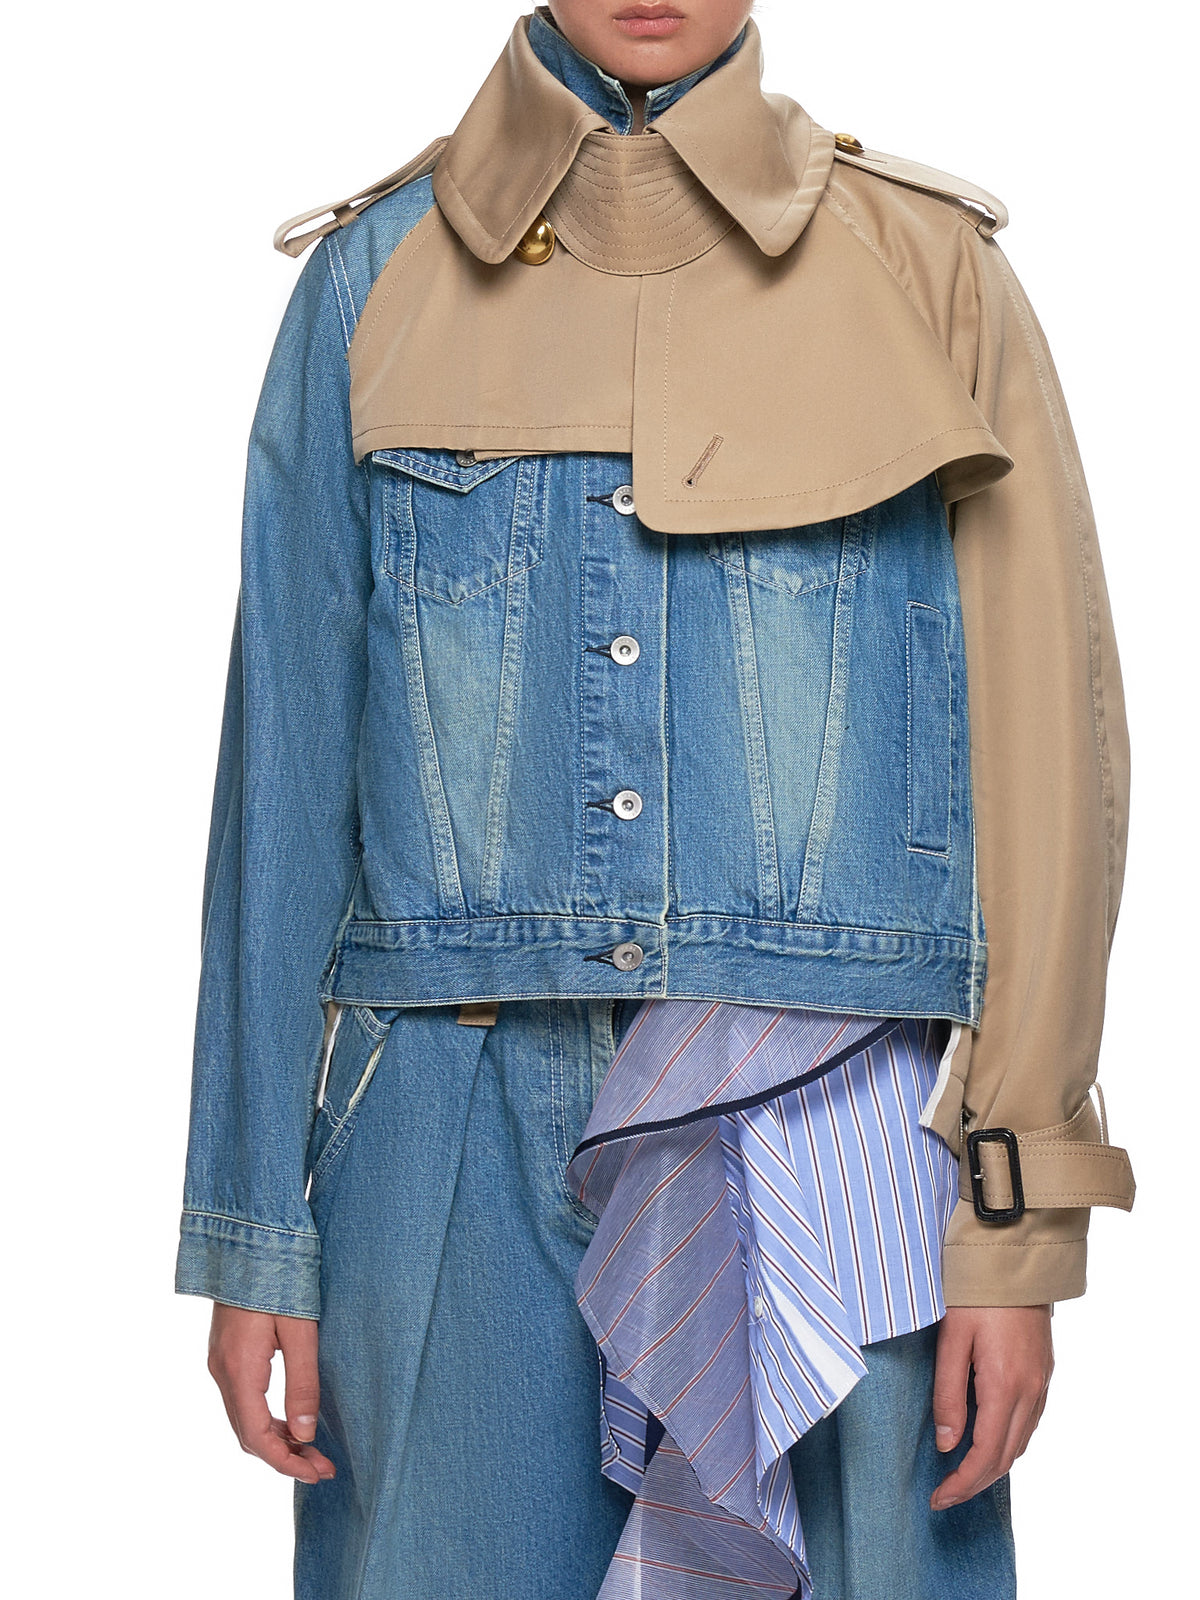 Split Jacket (19-04474-LIGHT-BLUE-BEIGE)